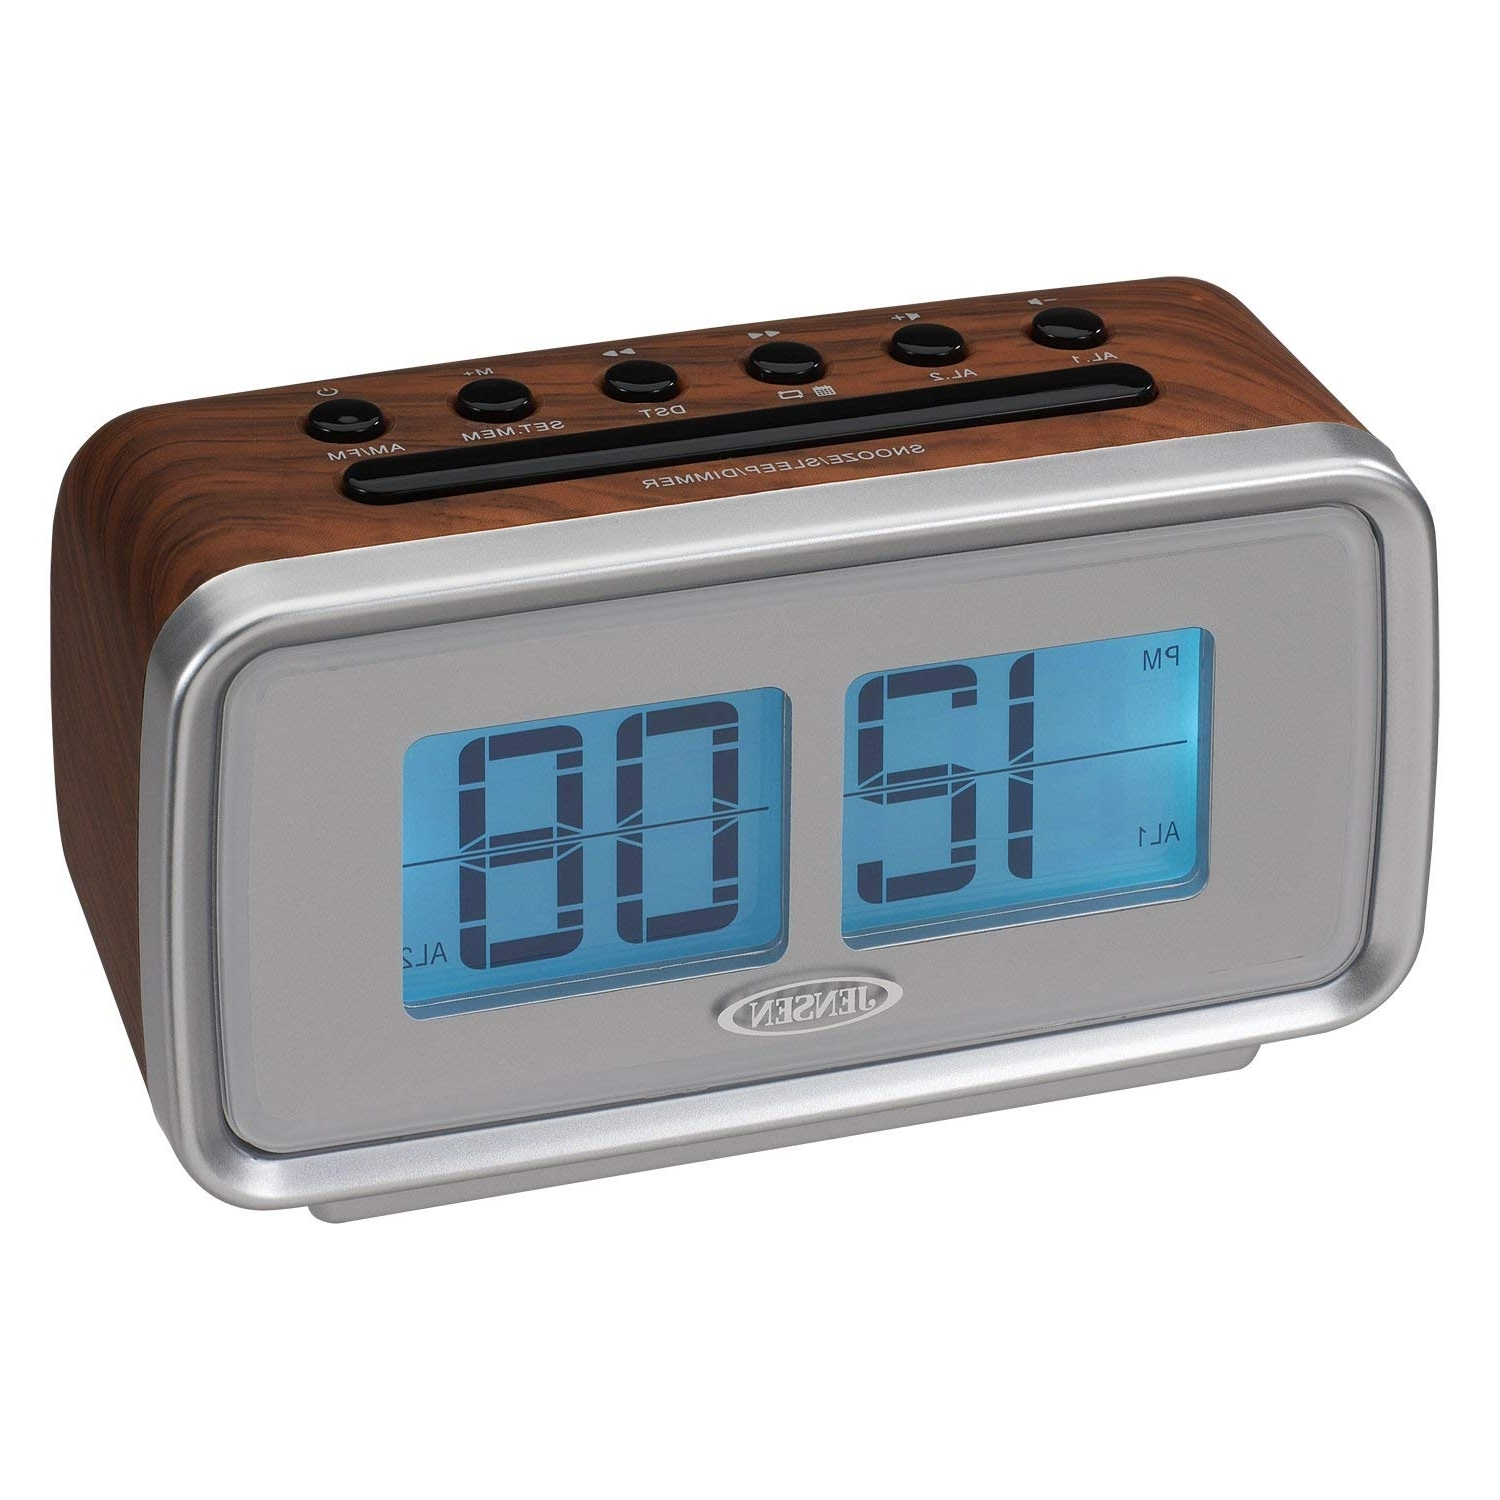 Amazon: Jensen Jcr 232 Am/fm Dual Alarm Clock With Digital Retro Pertaining To Well Known Jensen 5 Piece Counter Sets (View 3 of 25)